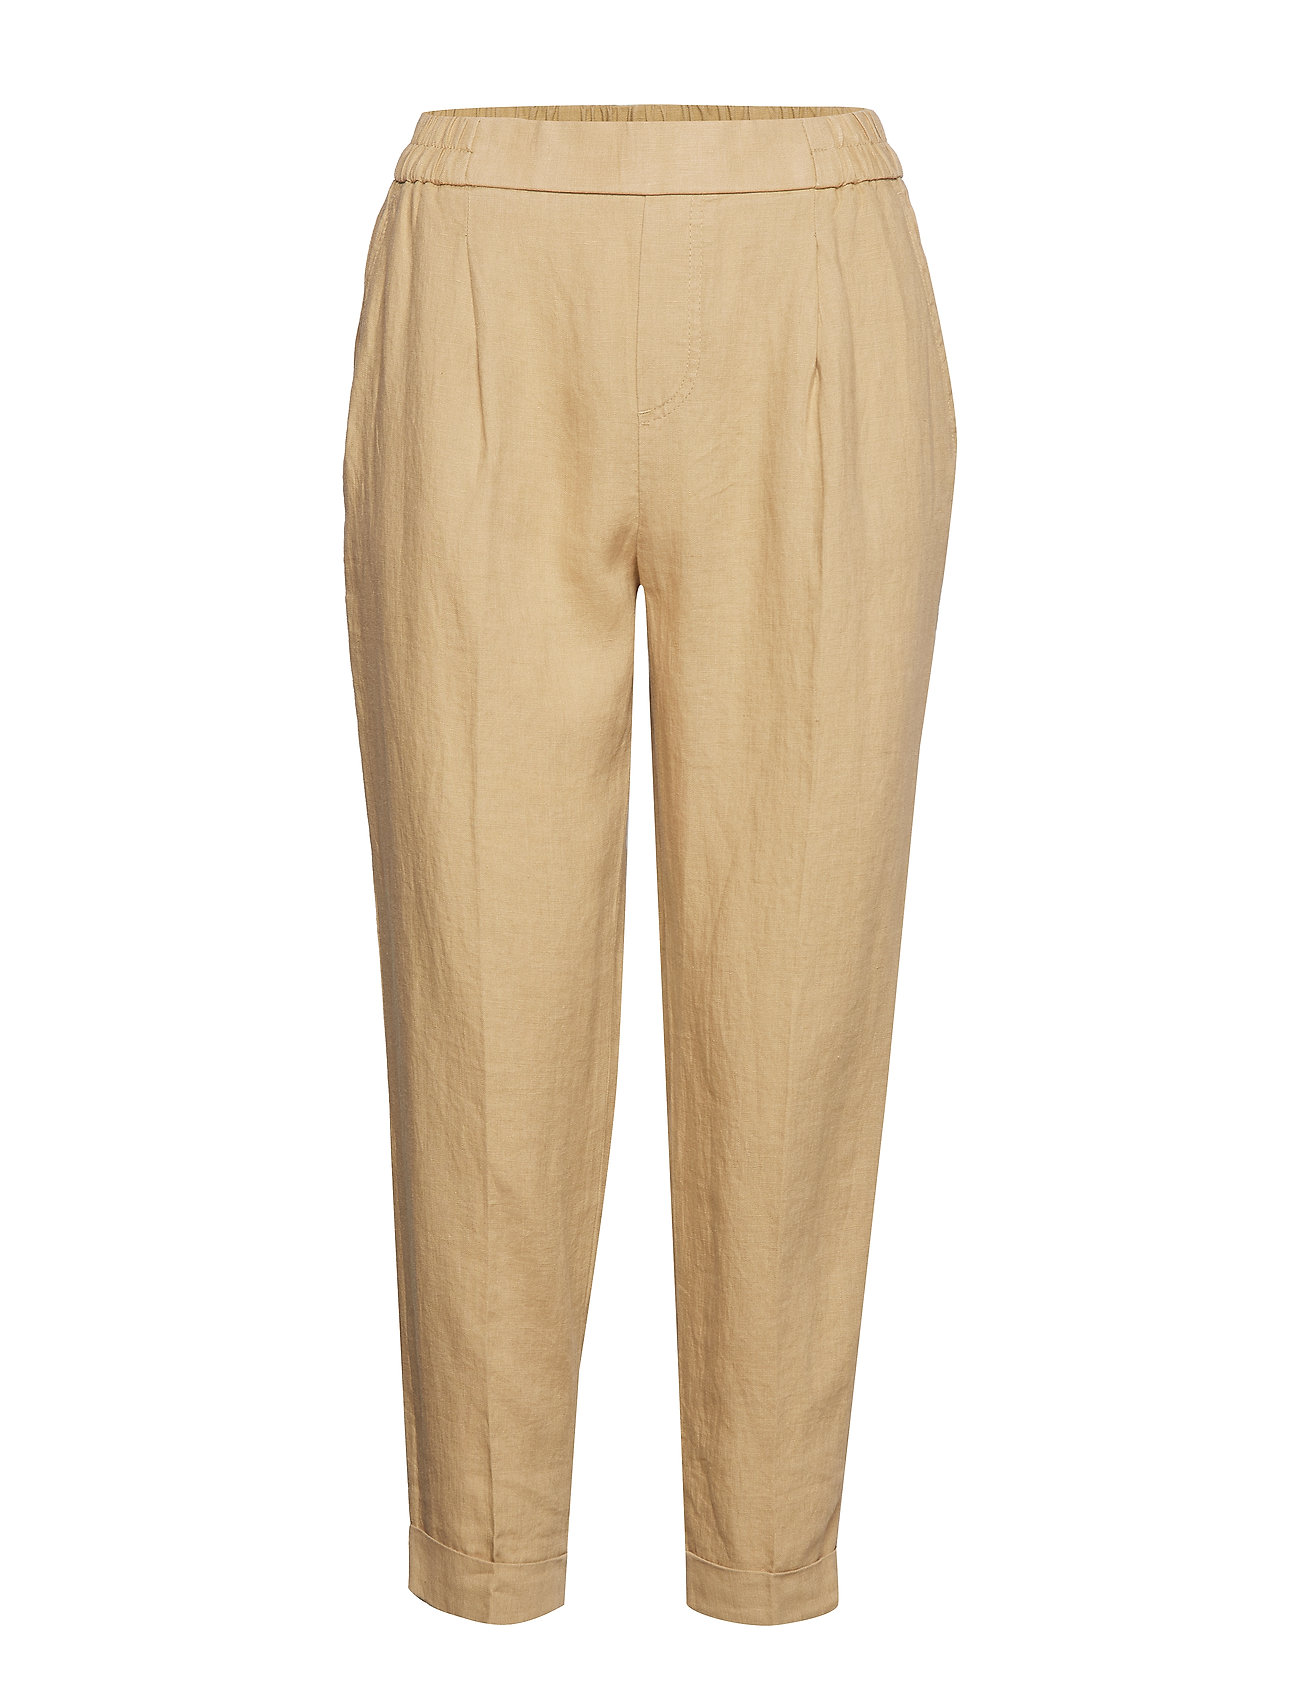 Trousers Casual Bukser Beige UNITED COLORS OF BENETTON